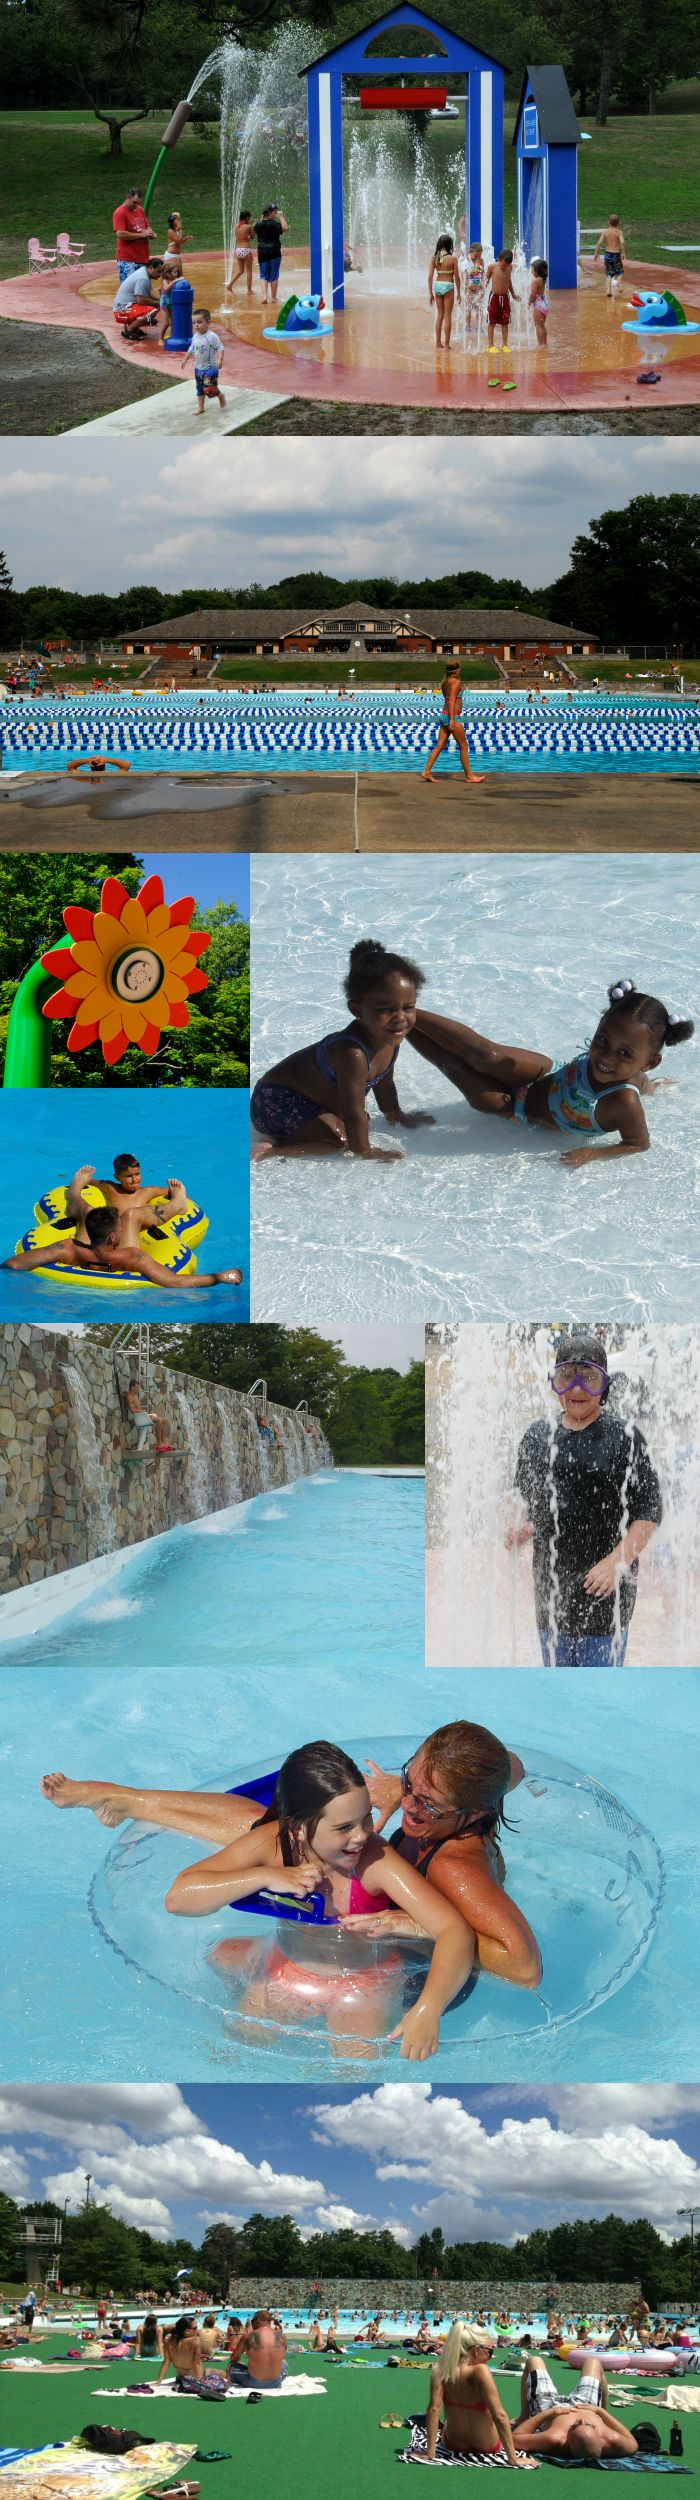 Boyce Park Wave Pool, Deer Lakes Spray Park, North Park Swimming Pool, Round Hill Spray Park, Settlers Cabin Park Wave Pool & South Park Wave Pool will open for the season on Sat., May 31! Spray parks are free & open daily 10:00 a.m.-8:00 p.m. Pools are open daily 11:30 a.m.-7:30 p.m. For pool rates, go to http://j.mp/ACPools